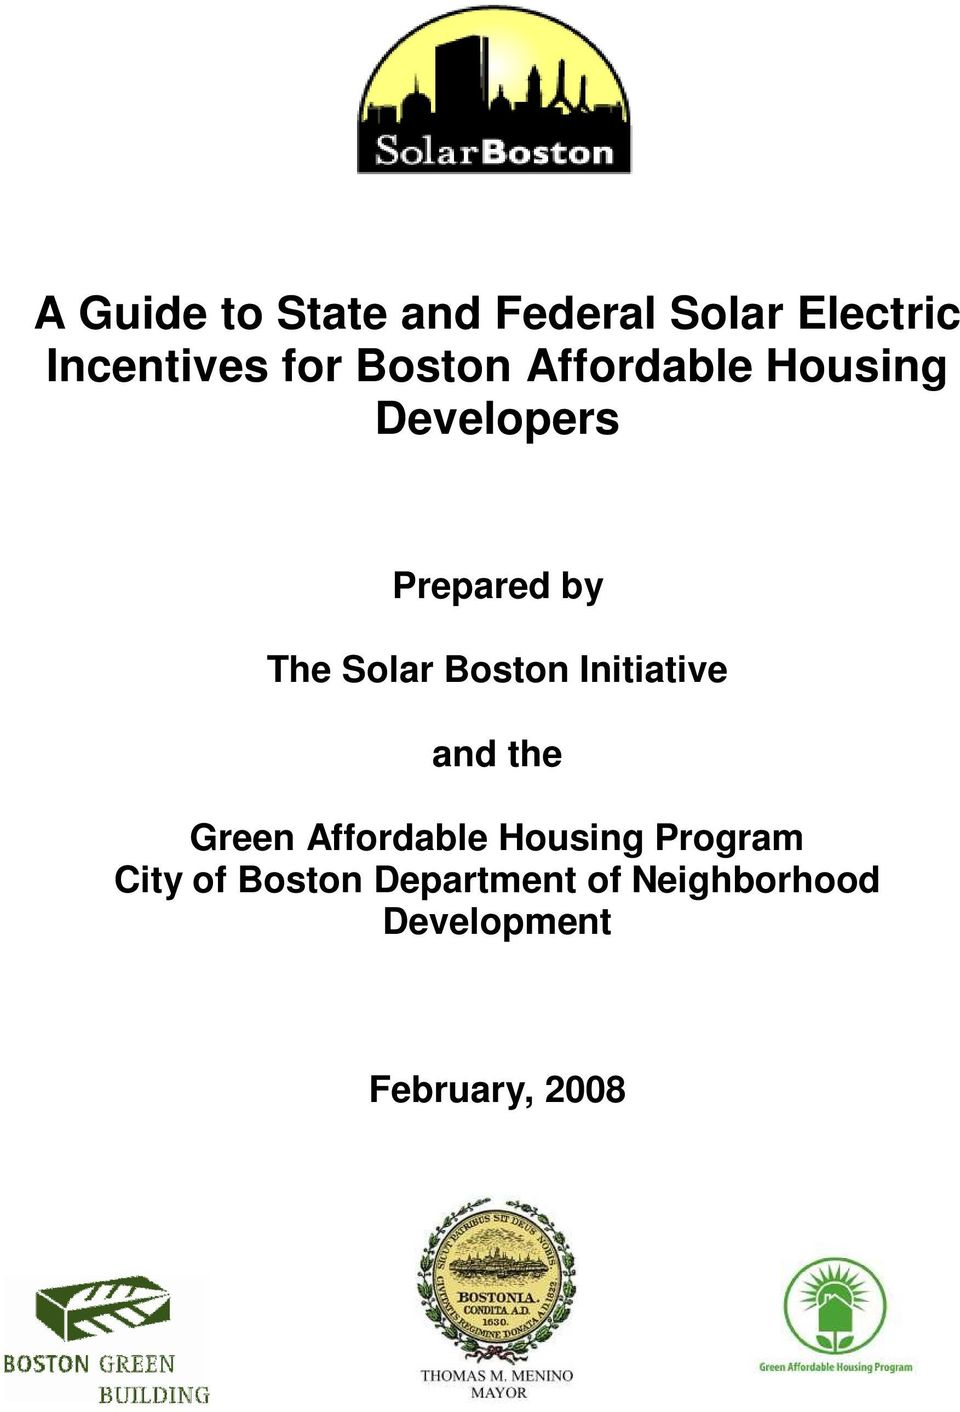 Boston Initiative and the Green Affordable Housing Program